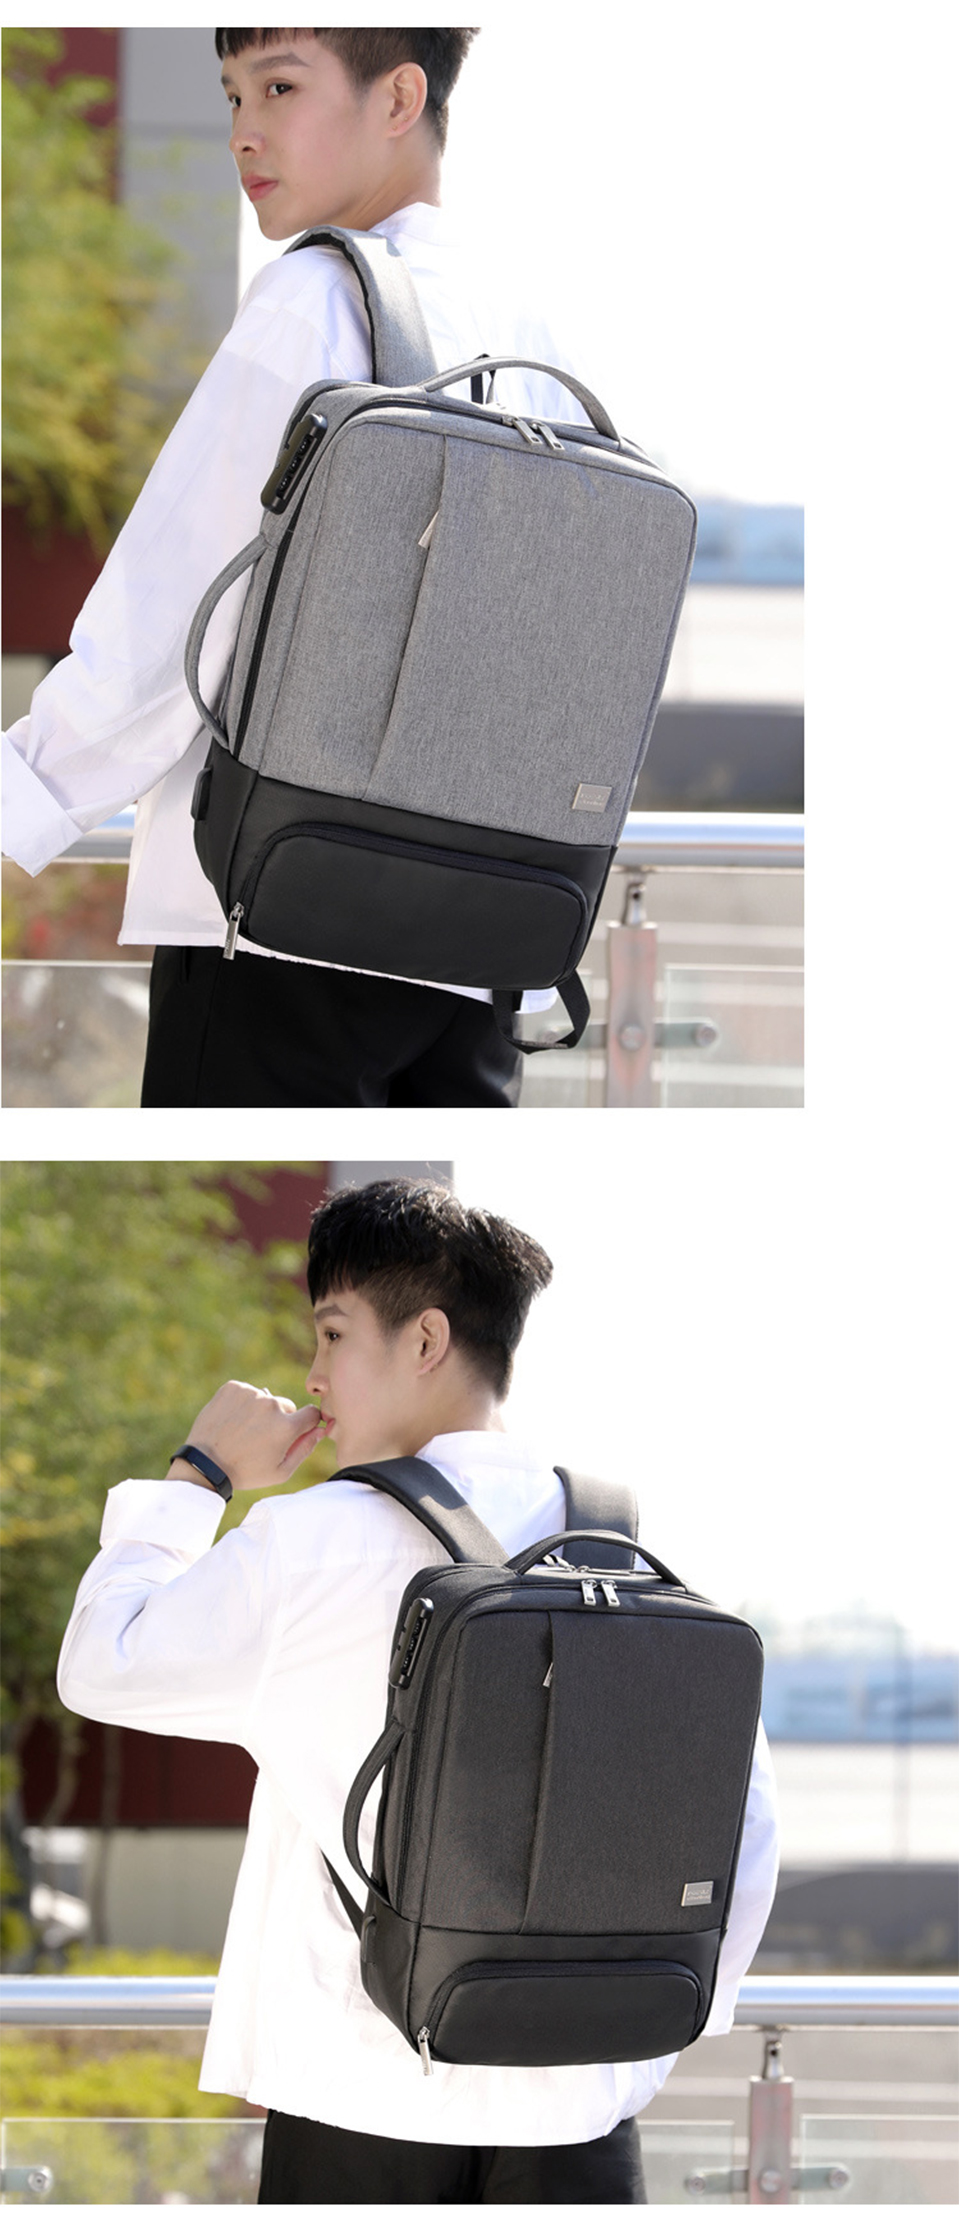 Laptop-Backpack-17-Inch-15.6-Anti-Theft-Backpack-Men-Business-Back-Pack-Male-Notebook-Travel-Student-Women-Bagpack-Office-Bags_22